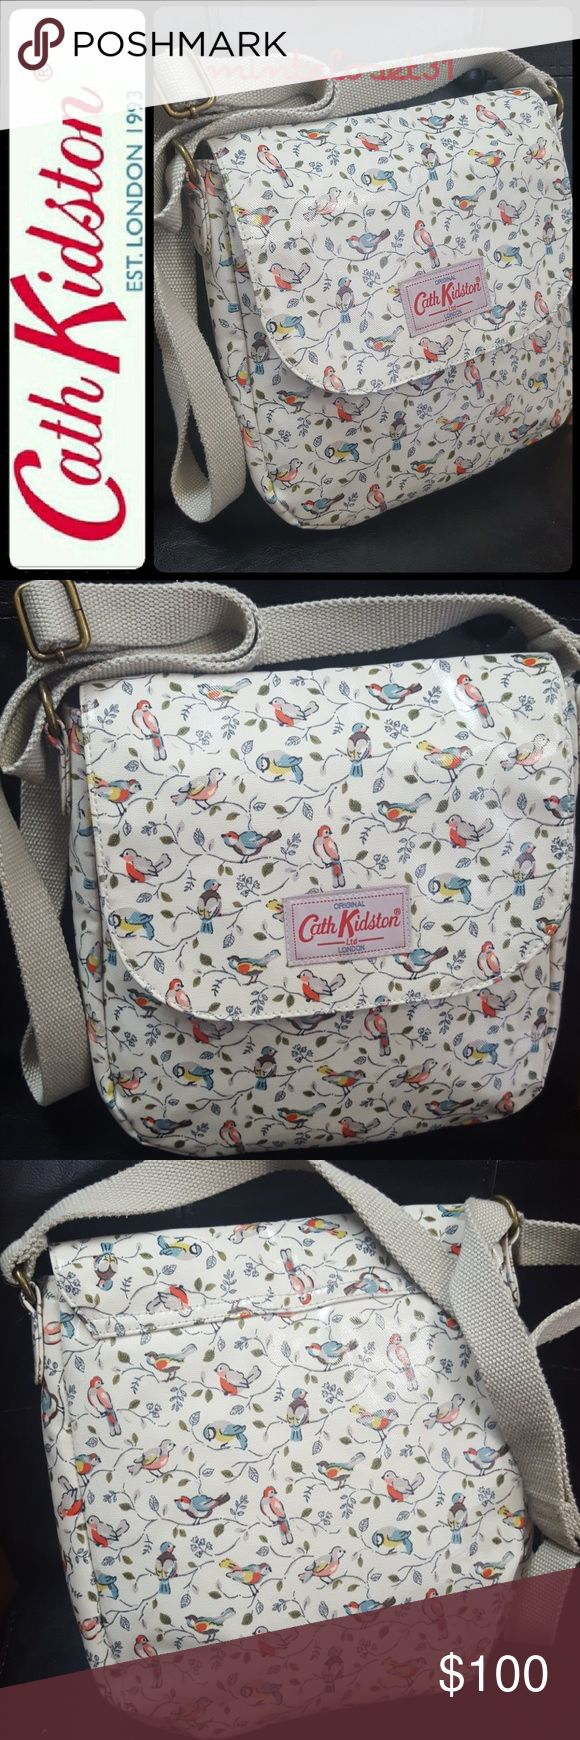 Cath Kidston London Crossbody Bag Cath Kidston London Signature Bag in Its Iconic Crossbody Style with Adorable Birds on Tree Leaves Pattern! Features Adjustable Strap That Drops up To 30 inches!  Front Flap Snap Button Closure Opens to Fully Lined Interior with Zip Pocket! 100% Cotton Interior with Coated Canvas Exterior! Medium Sized in Used Good Condition! Cath Kidston Bags Crossbody Bags